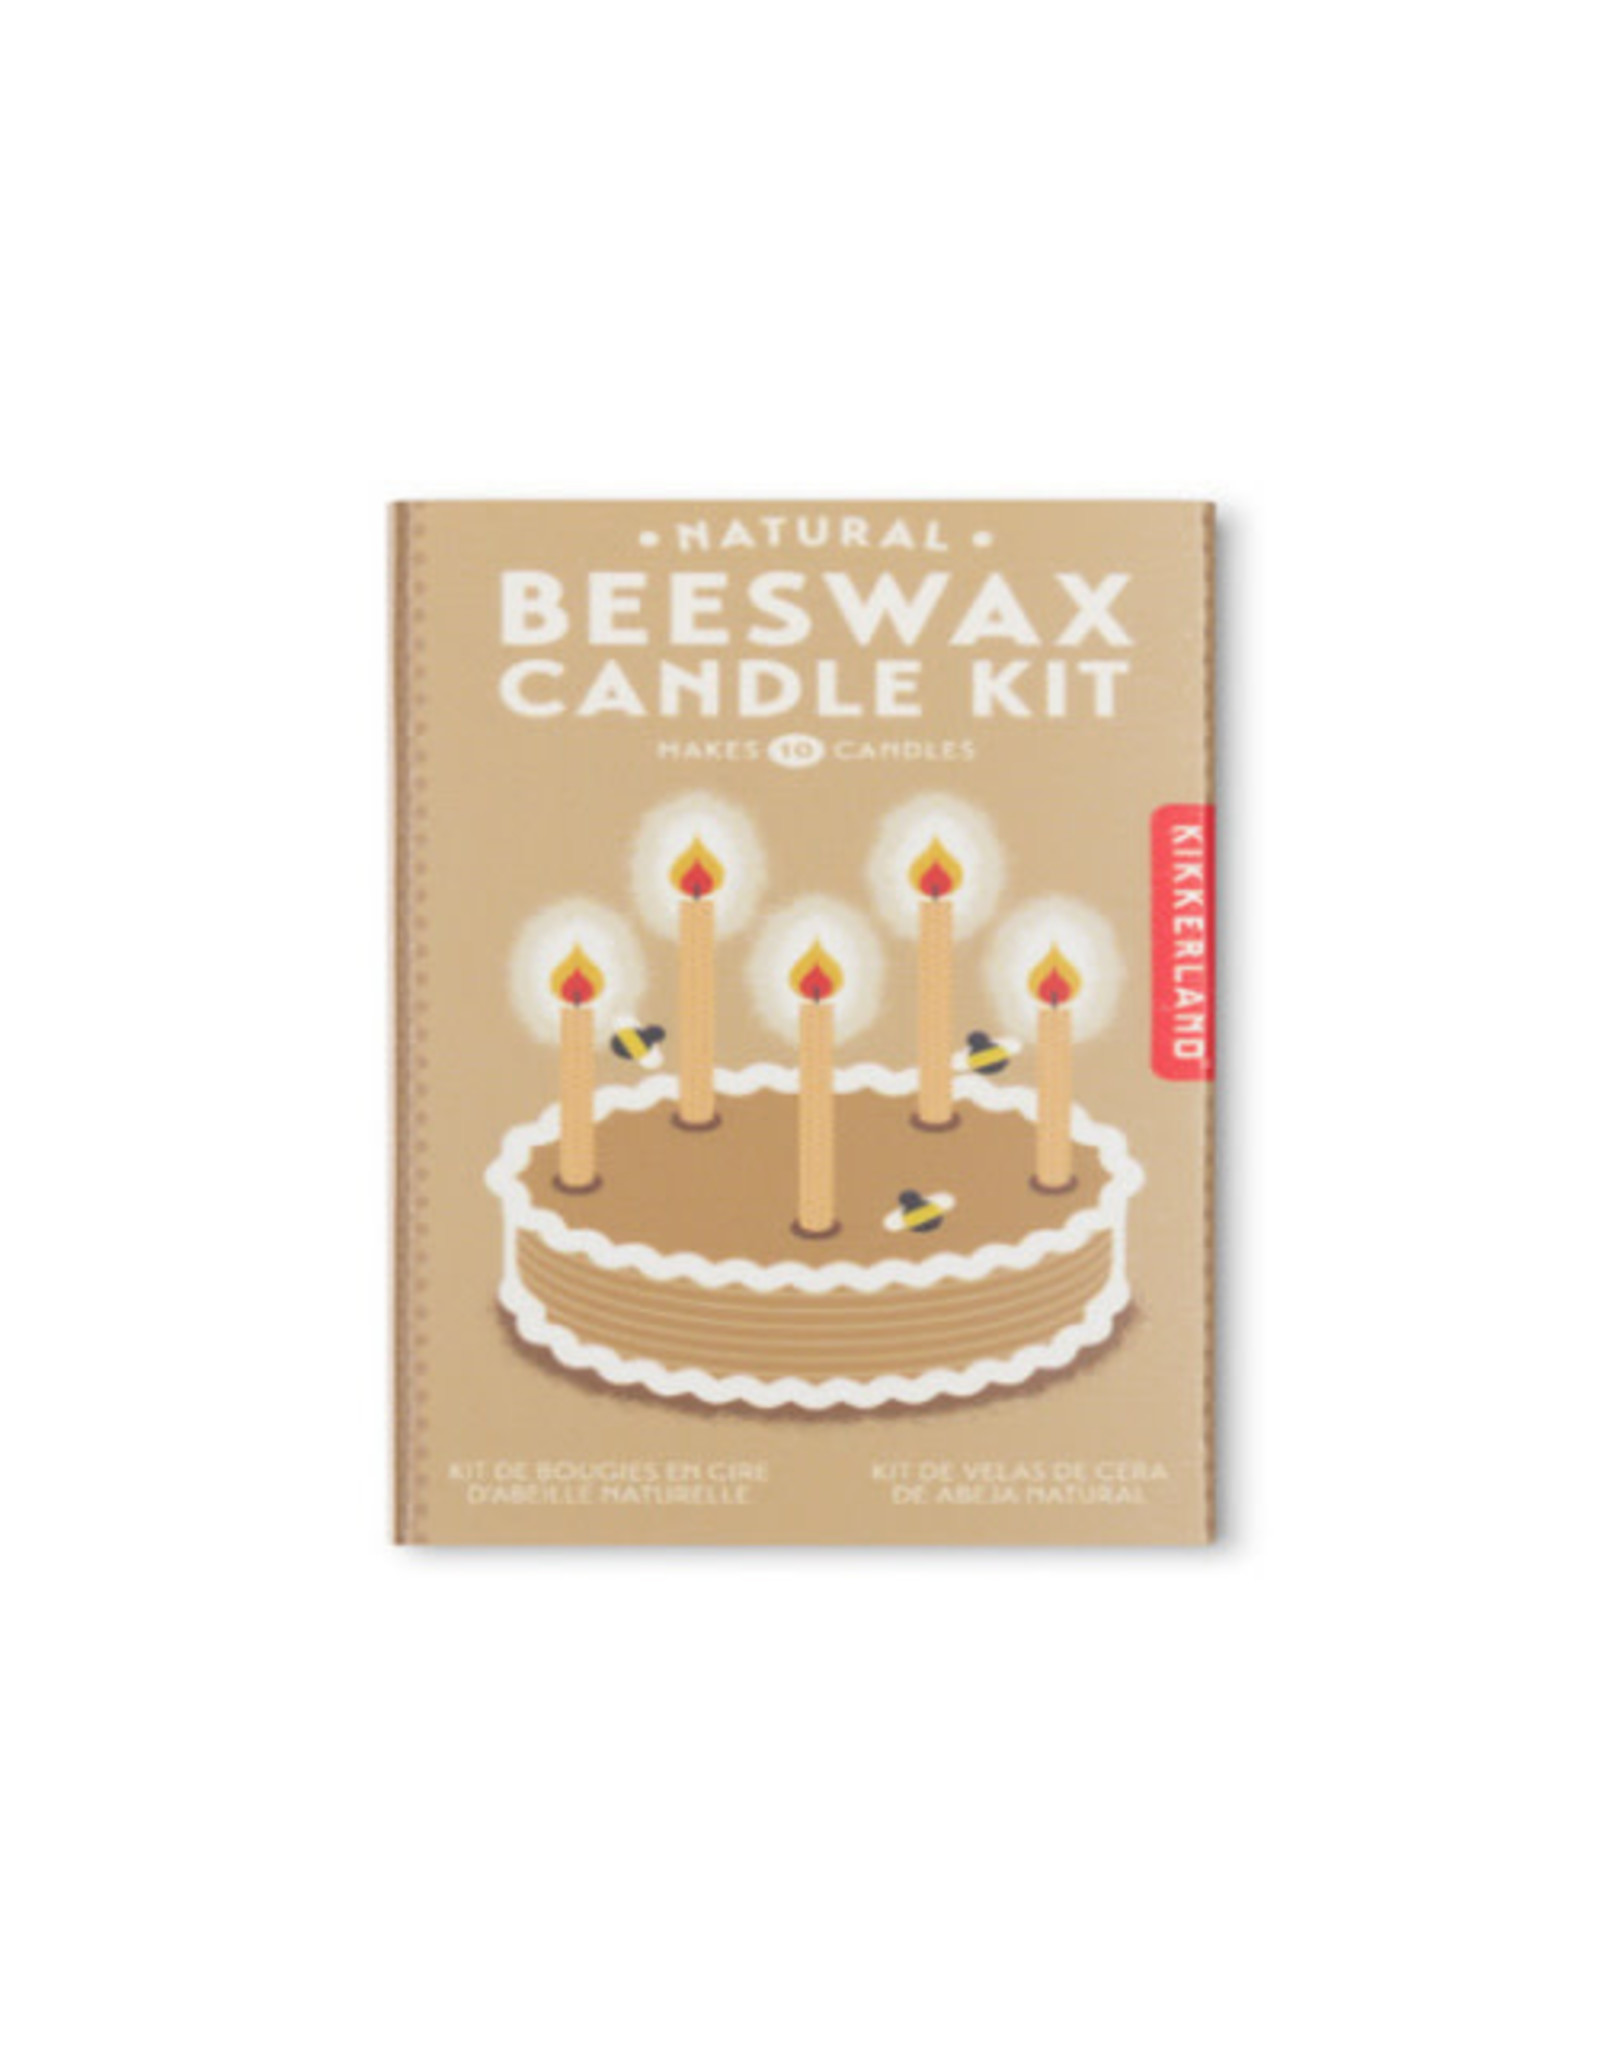 KND - Beeswax Candle Kit/Natural